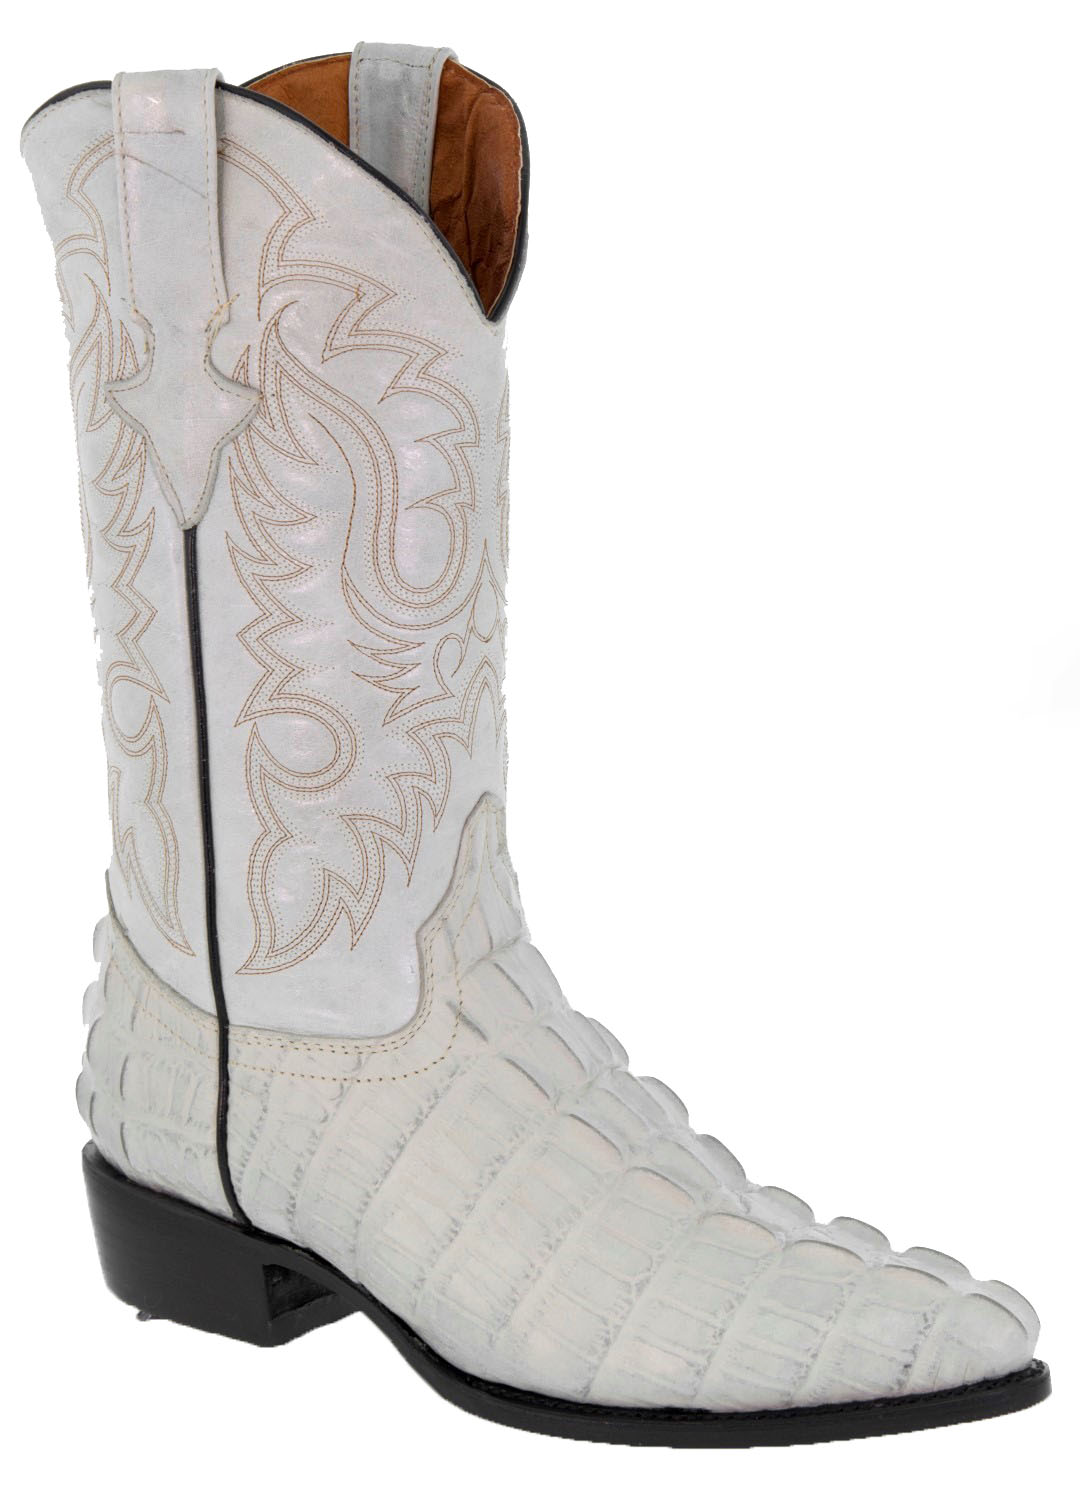 18203d959c50e Mens Crocodile Tail Cowboy Boots Western Wedding Off White Real ...